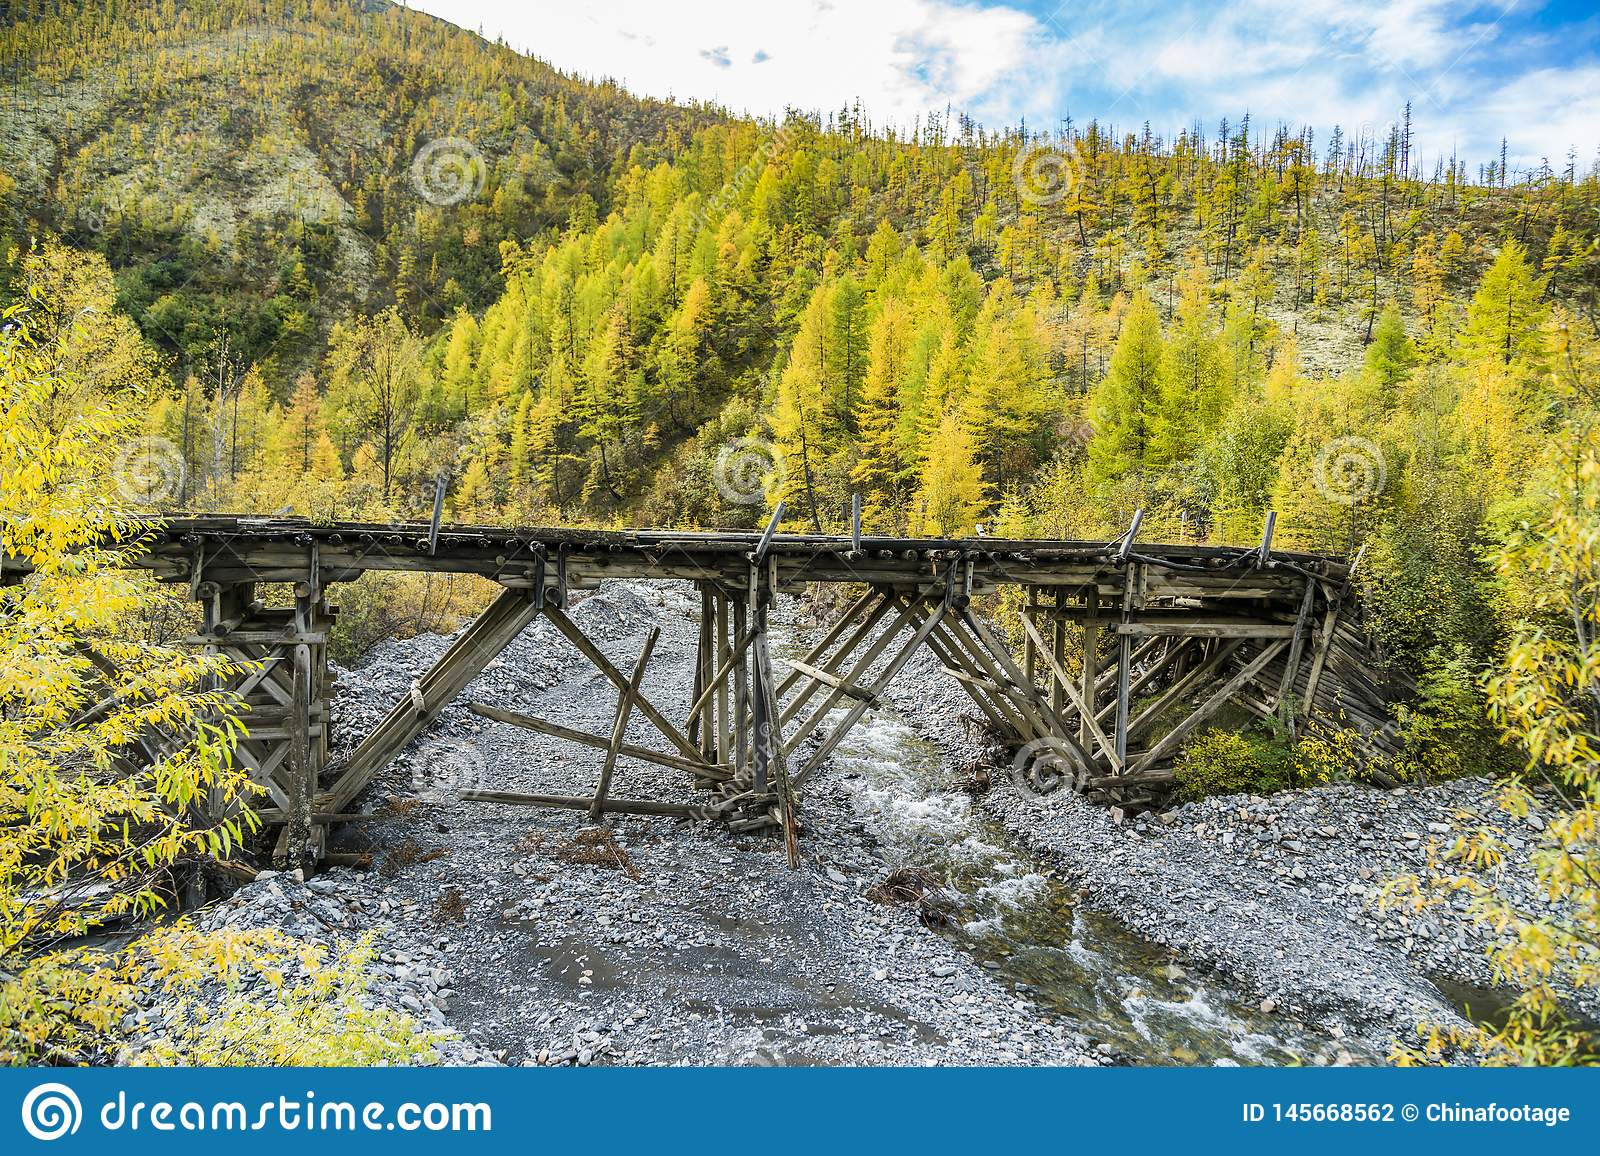 Russia. Nature of the Far East: Wooden bridge on the forest road